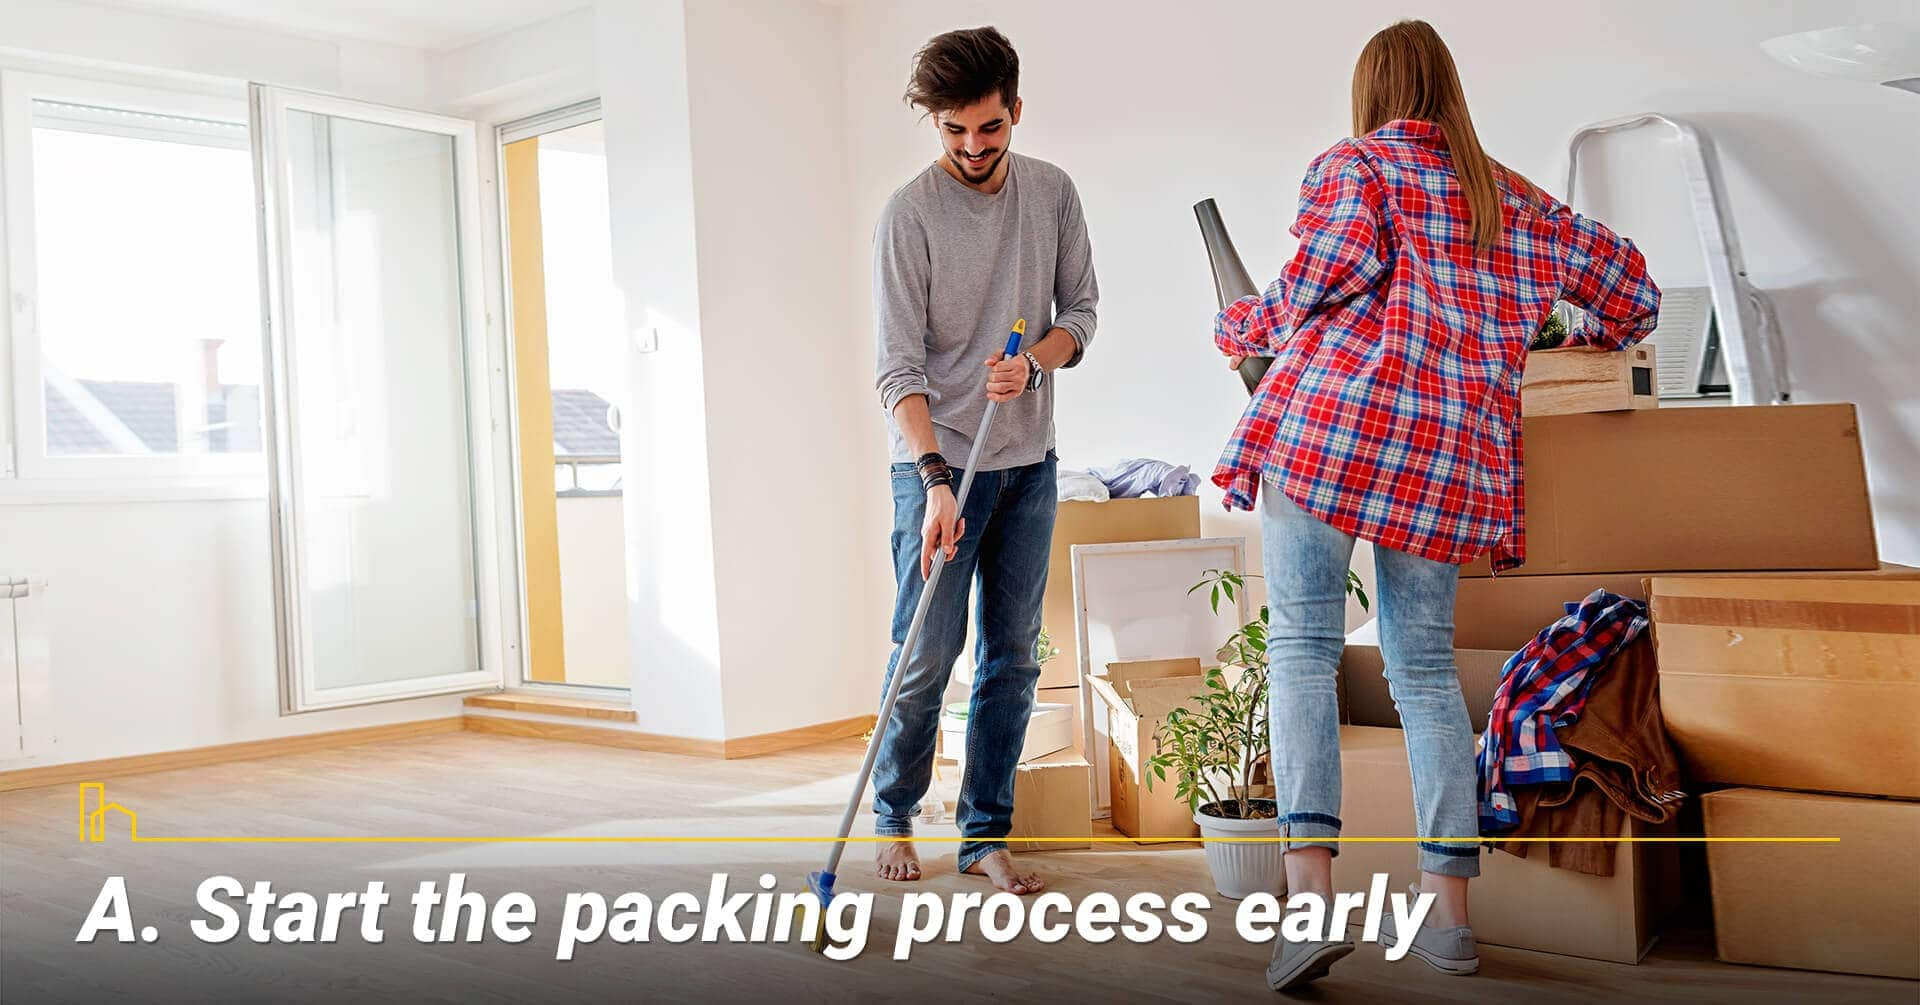 Start the packing process early, start packing